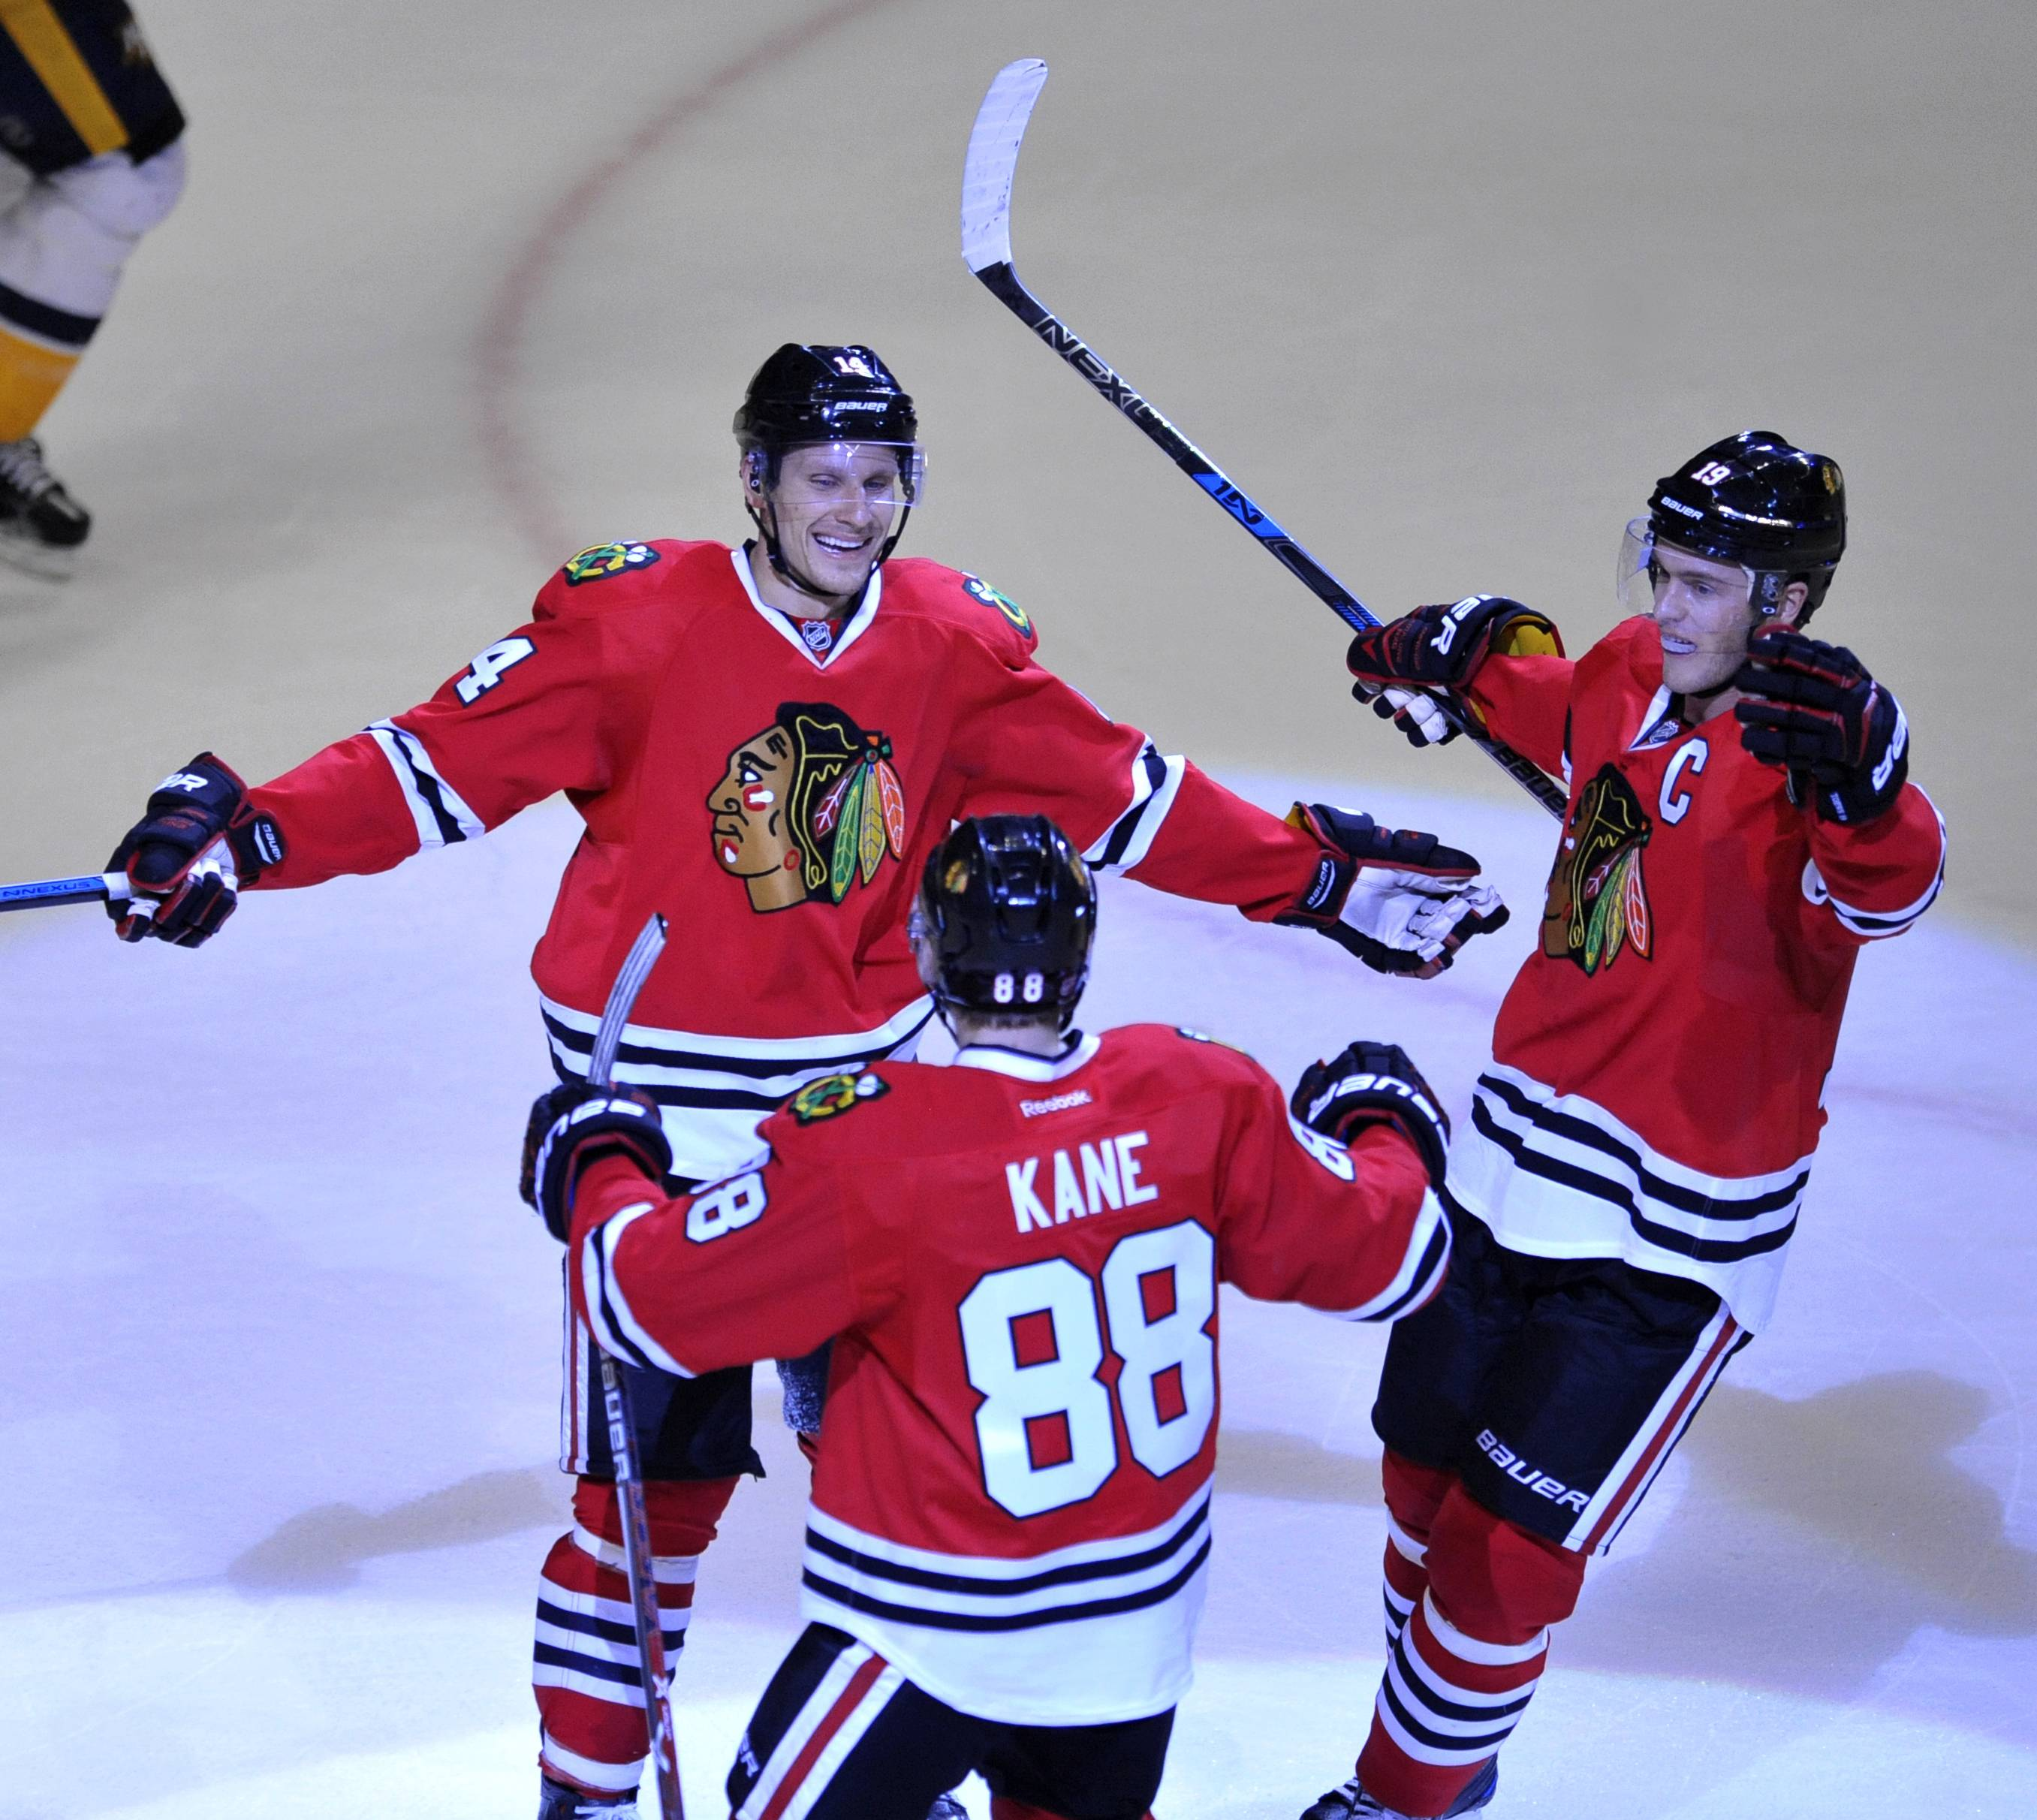 Chicago Blackhawks' Richard Panik (14), of Slovakia, celebrates with teammates Patrick Kane (88) and Jonathan Toews, right, after scoring a goal during the third period of an NHL hockey game against the Nashville Predators, Saturday, Oct. 15, 2016, in Chicago. (AP Photo/Paul Beaty)